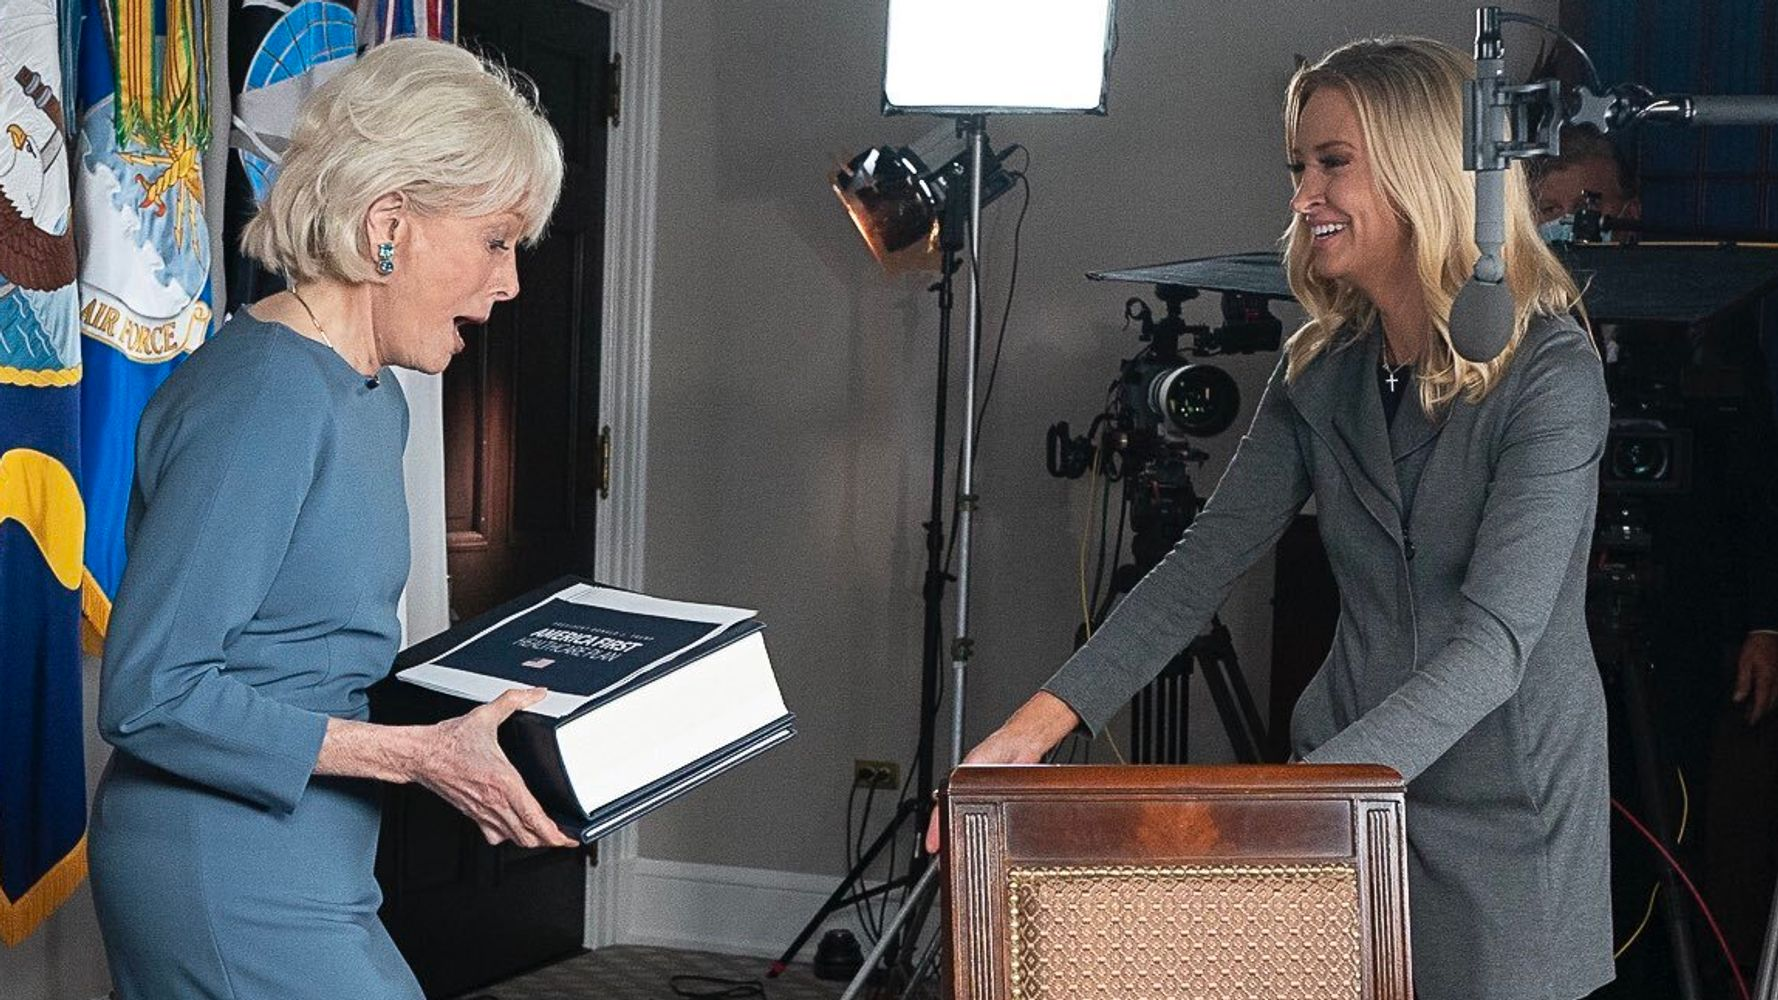 '60 Minutes' Reveals What Was Really In That Giant Trump Health Care Plan Book